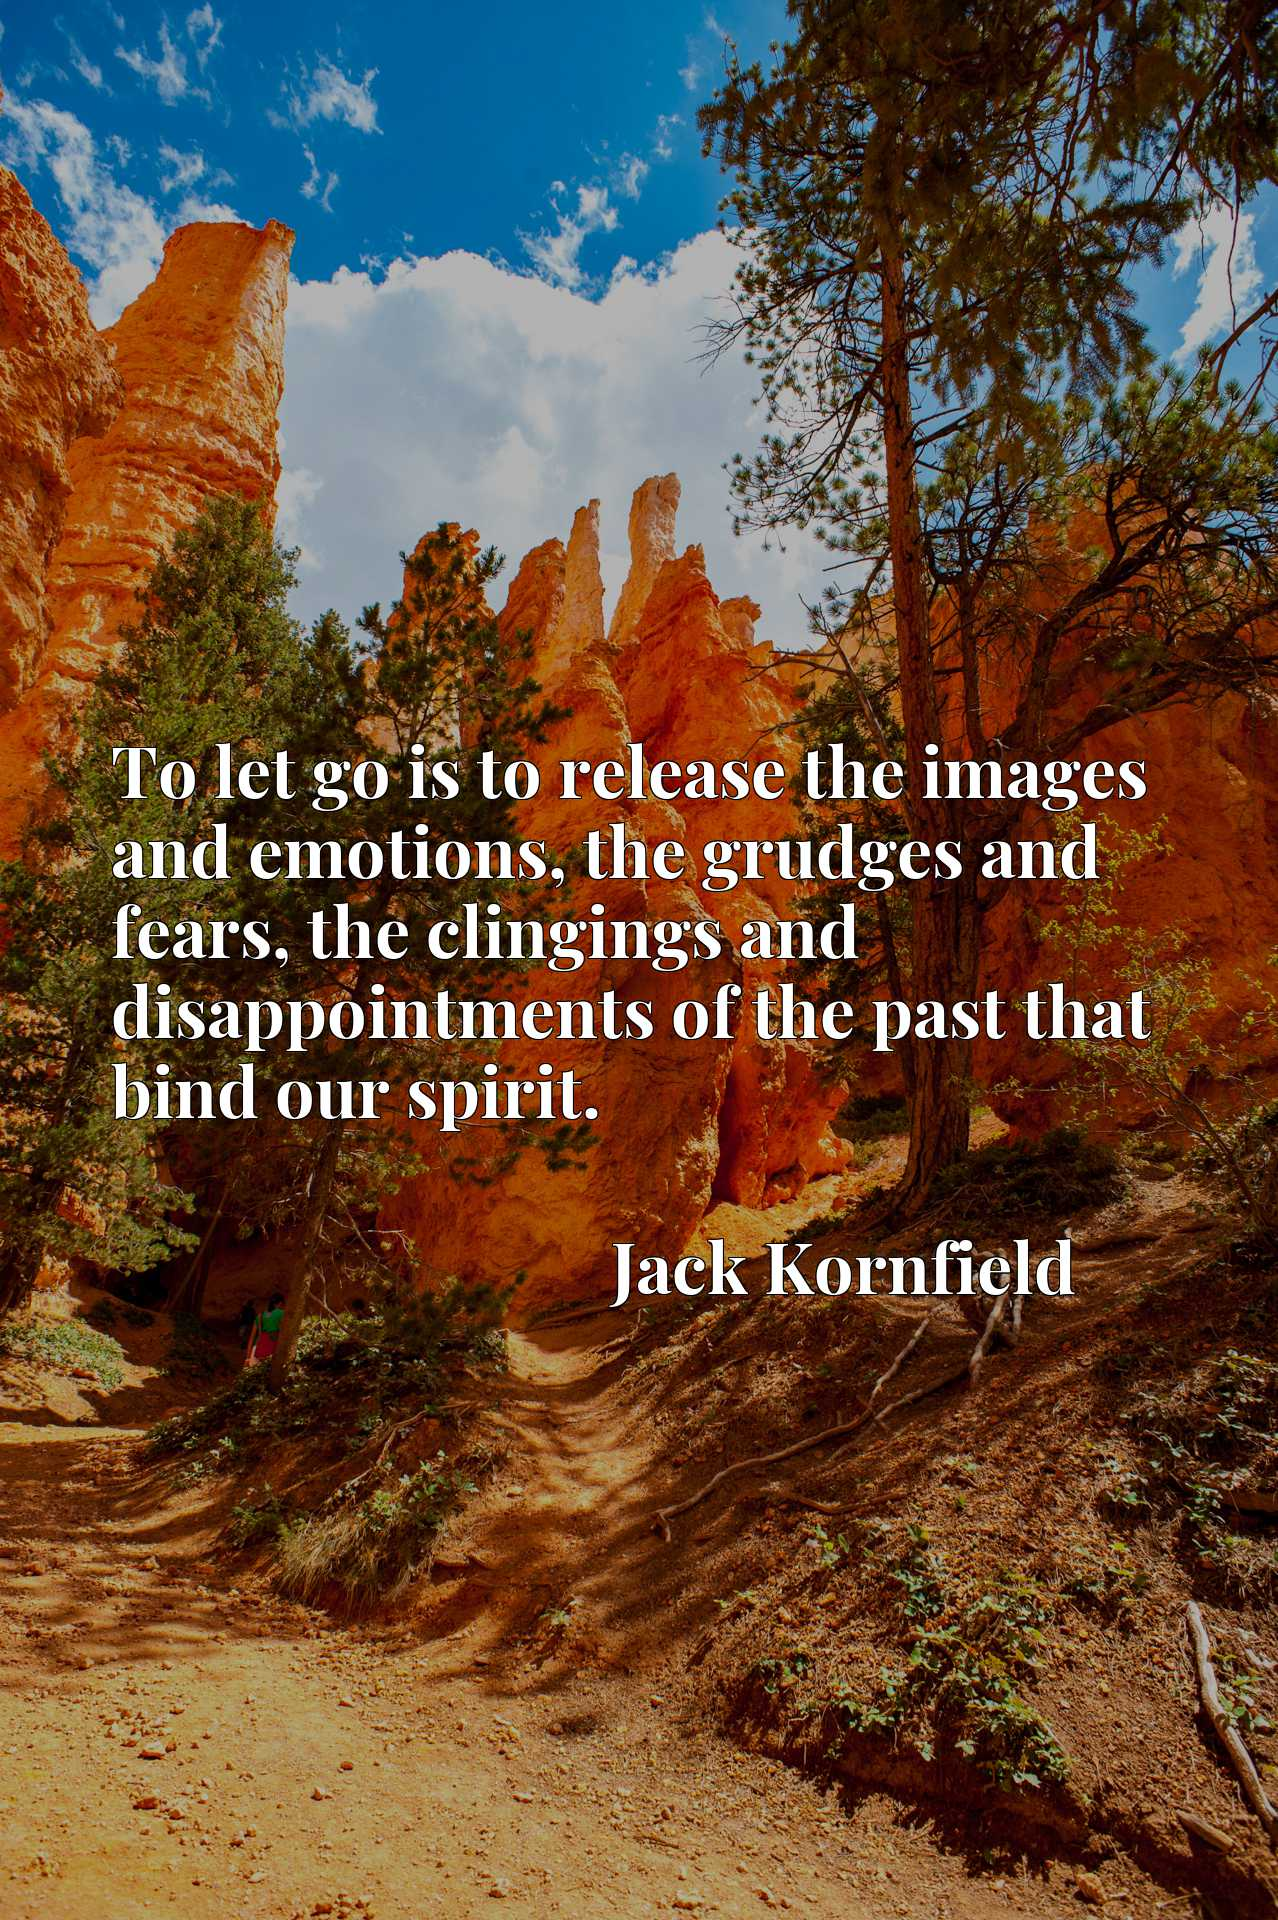 Quote Picture :To let go is to release the images and emotions, the grudges and fears, the clingings and disappointments of the past that bind our spirit.